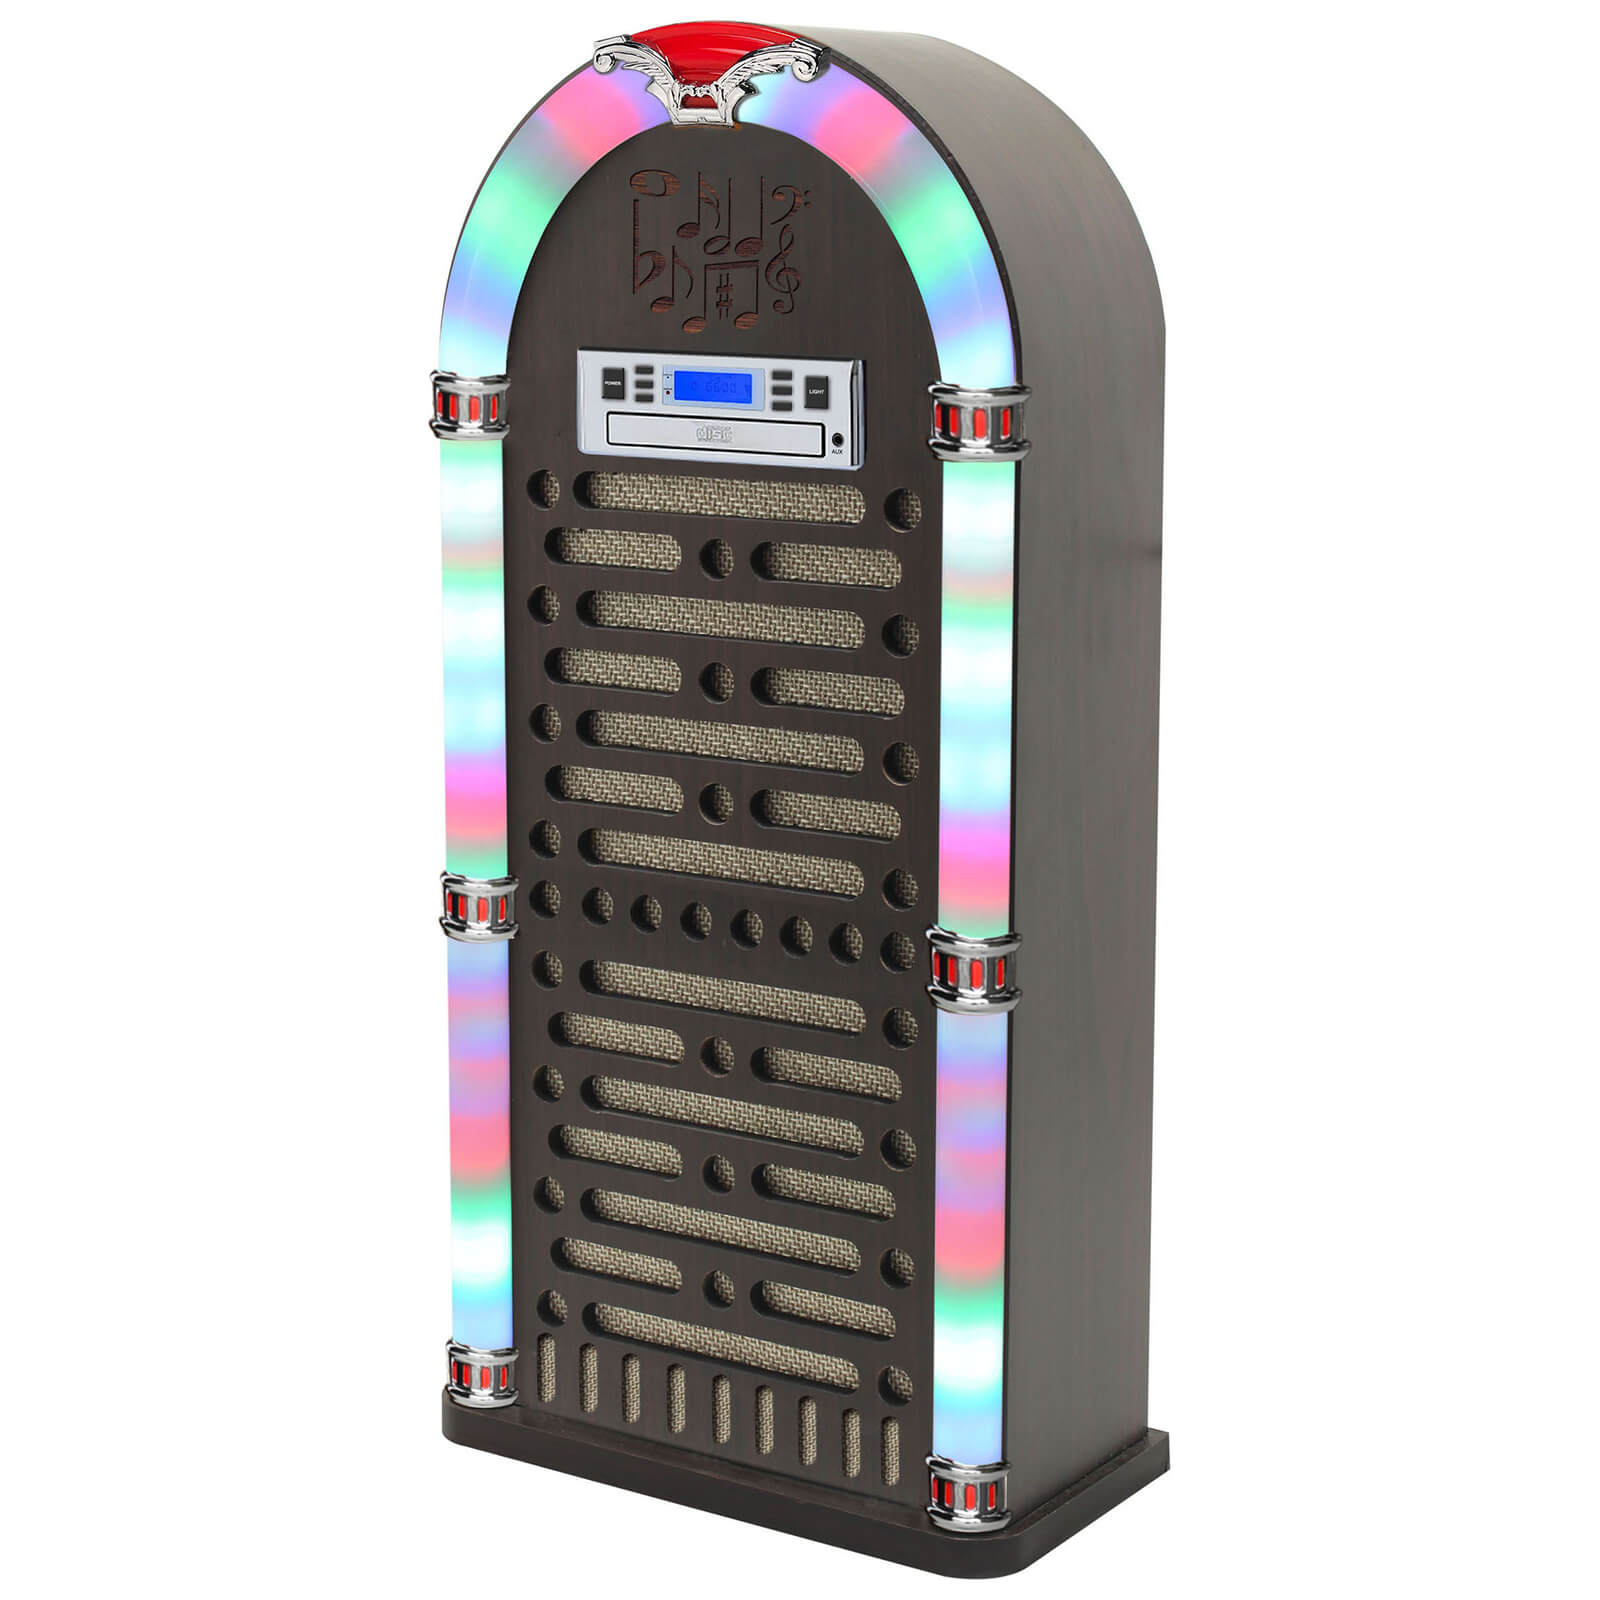 iTek Multi-Functional Bluetooth Jukebox with CD Player, FM Radio Function and LED Display - Brown